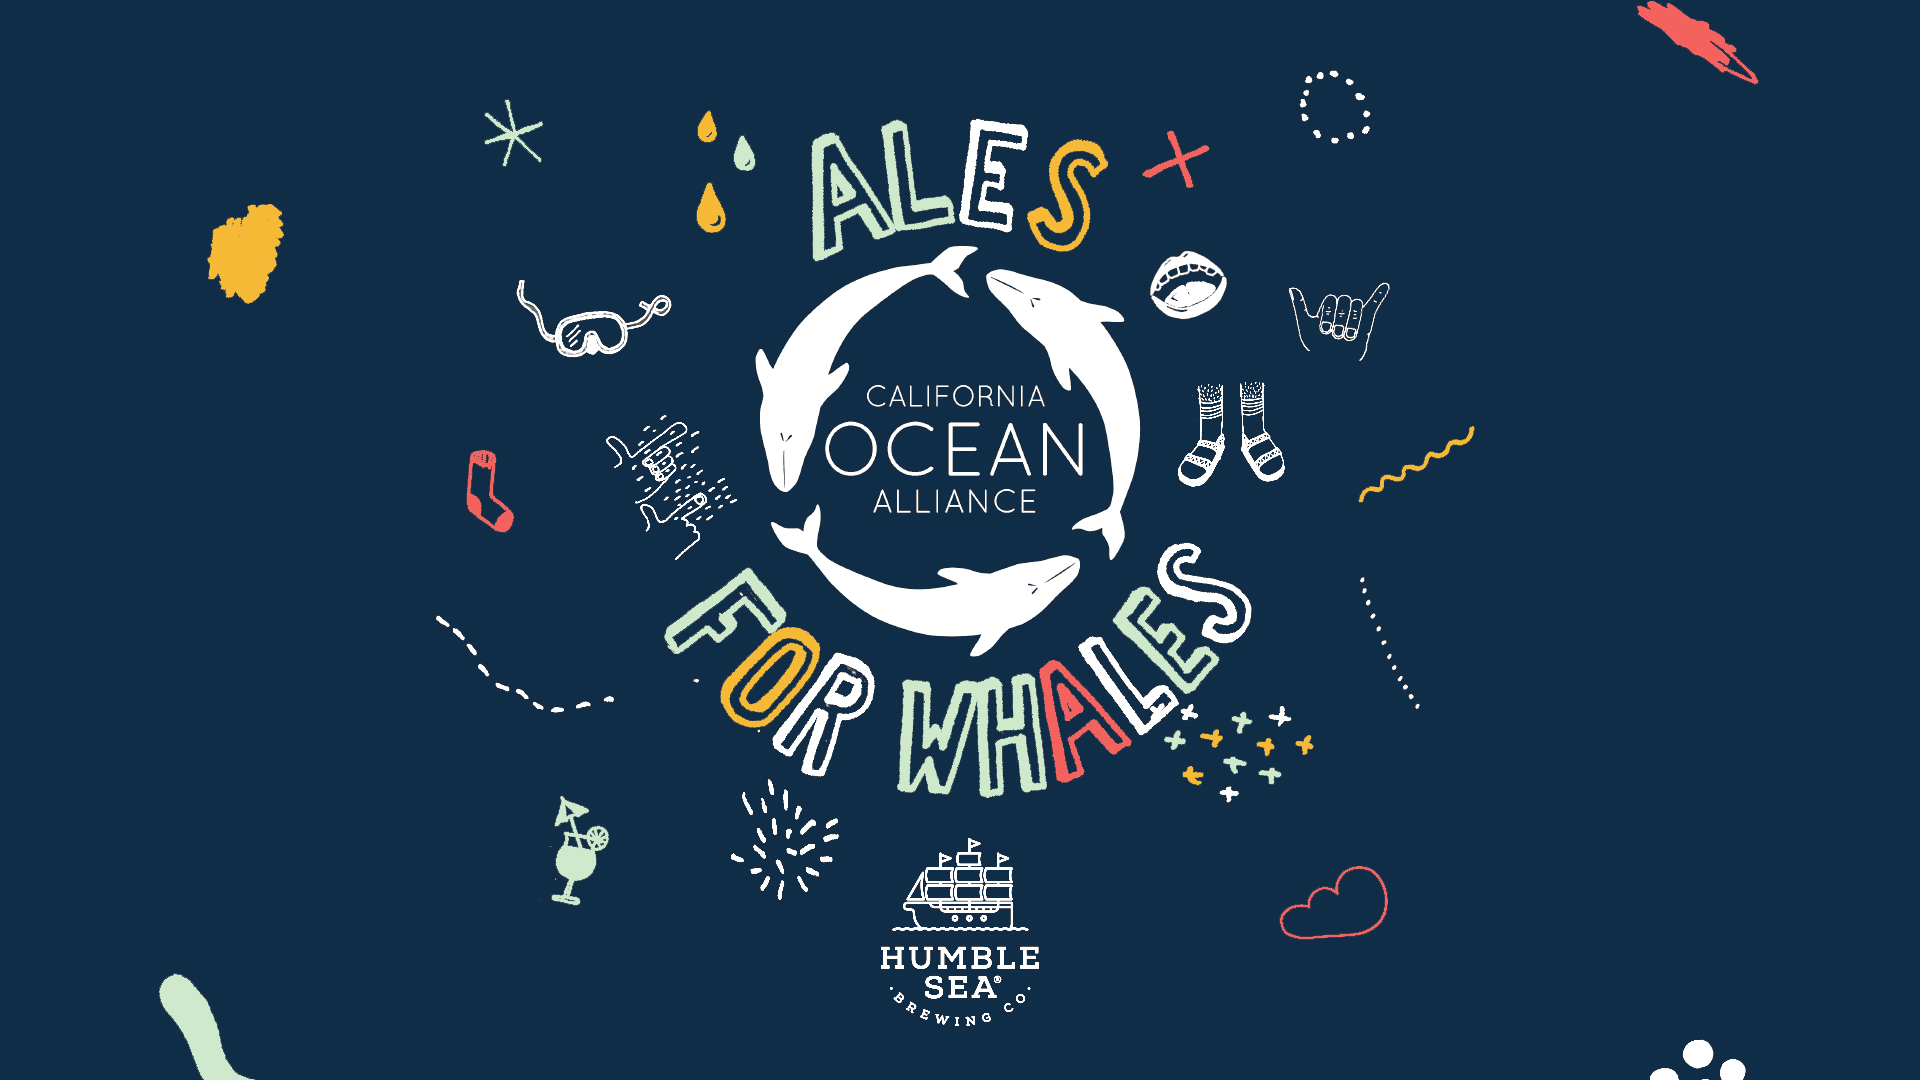 Ales for Whales a Huge Success! - Our fundraiser to support marine mammal education was went off without a hitch! Click here to see photos and learn more about the event!